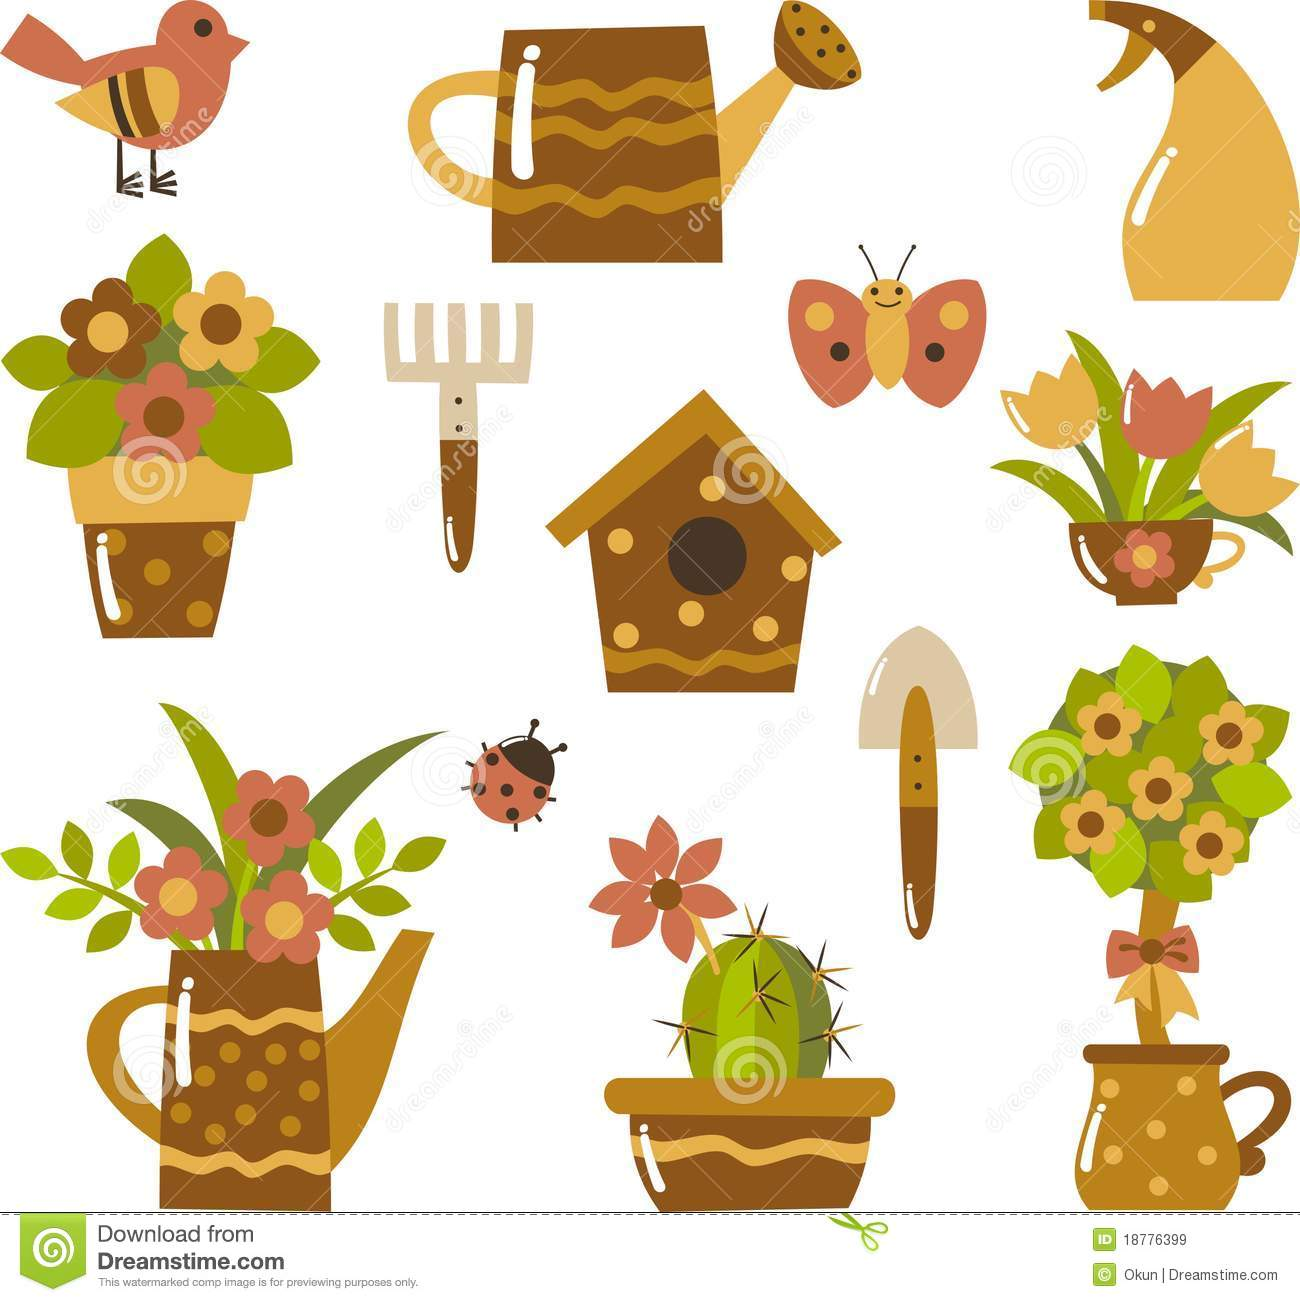 Garden Clip-art Royalty Free Stock Images - Image: 18776399